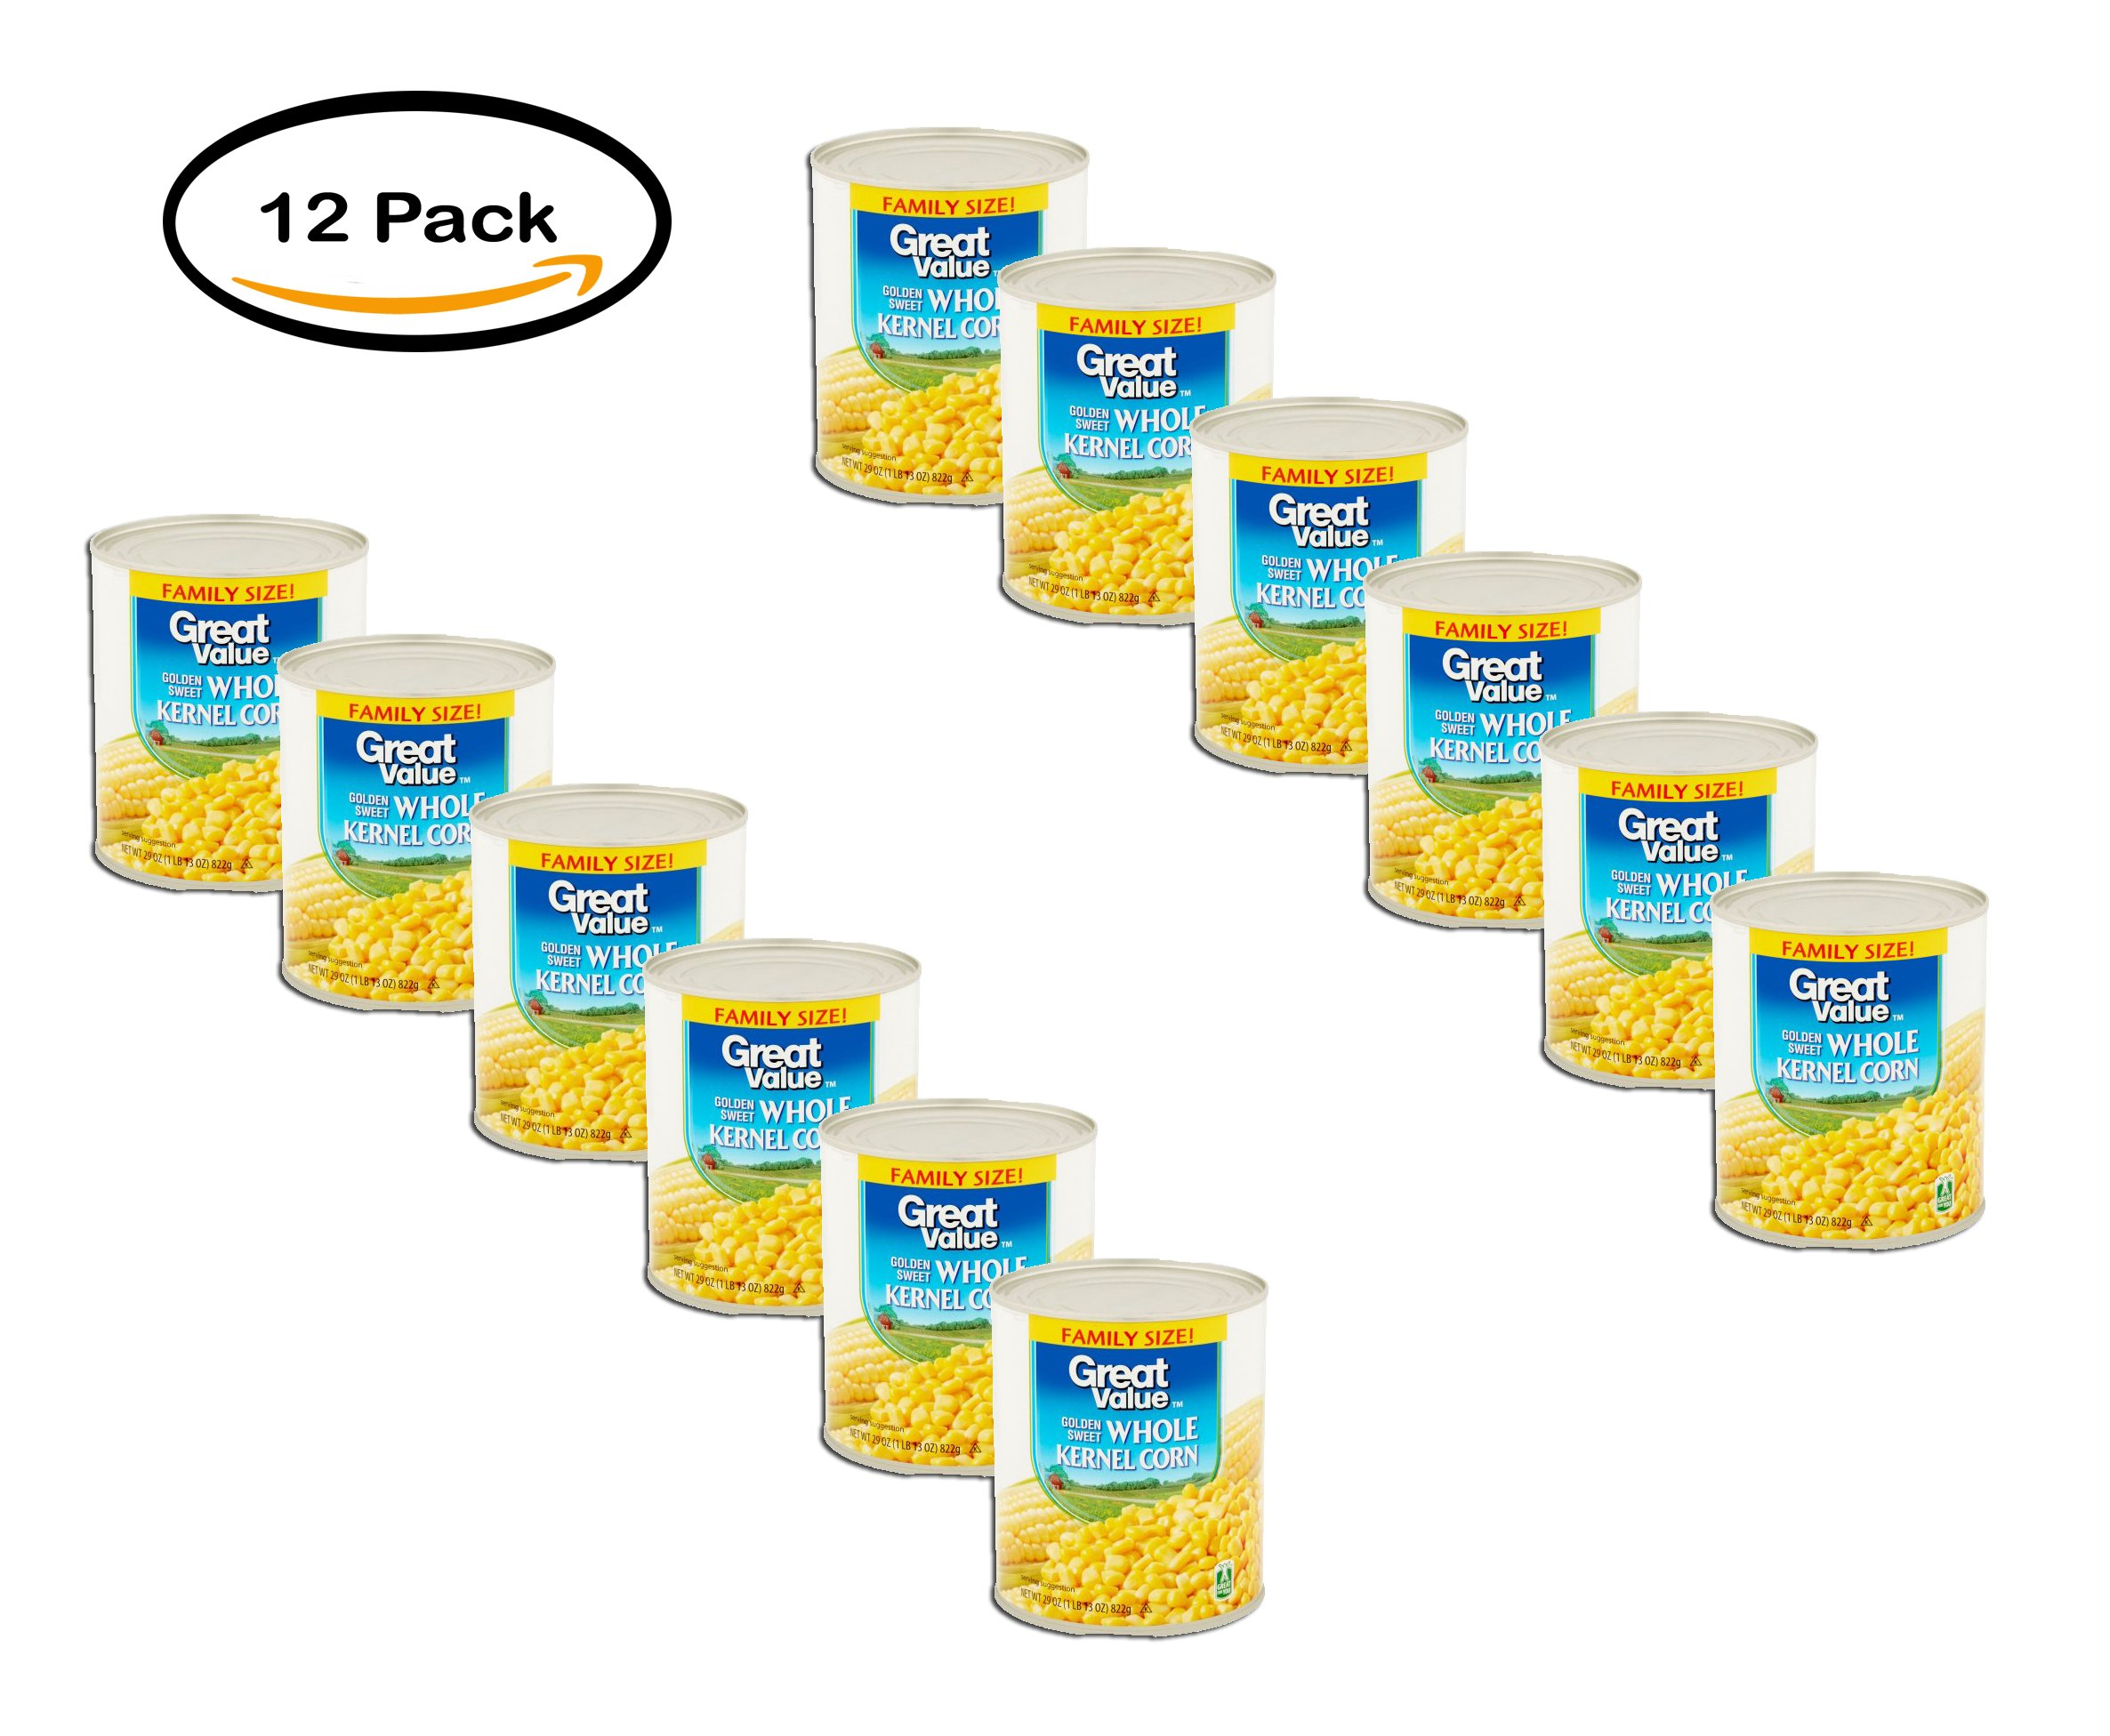 PACK OF 12 - Great Value Golden Sweet Whole Kernel Corn, Family Size, 29 oz